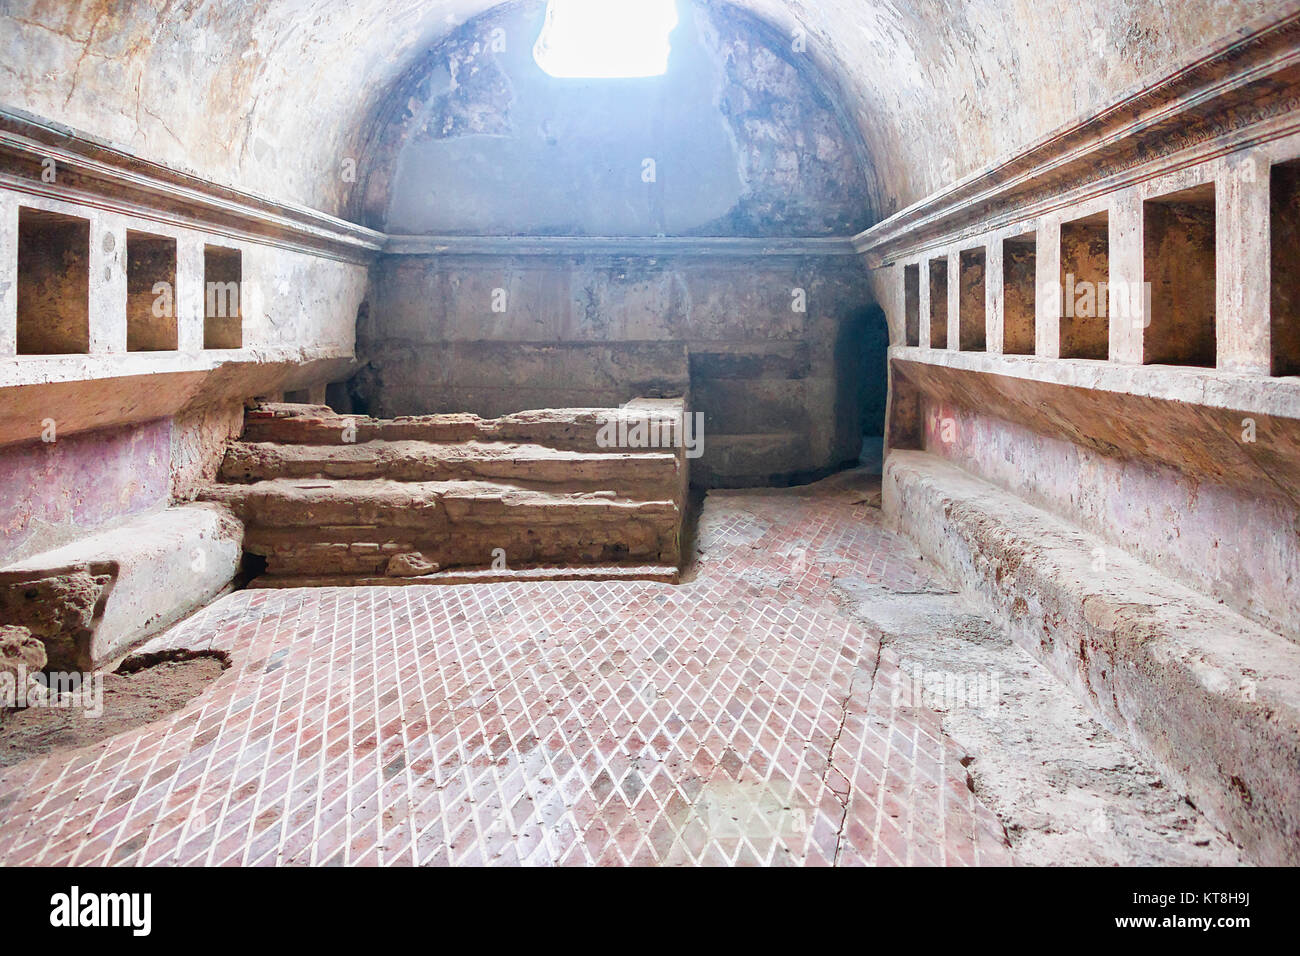 Pompeii House Room Stock Photos & Pompeii House Room Stock ...